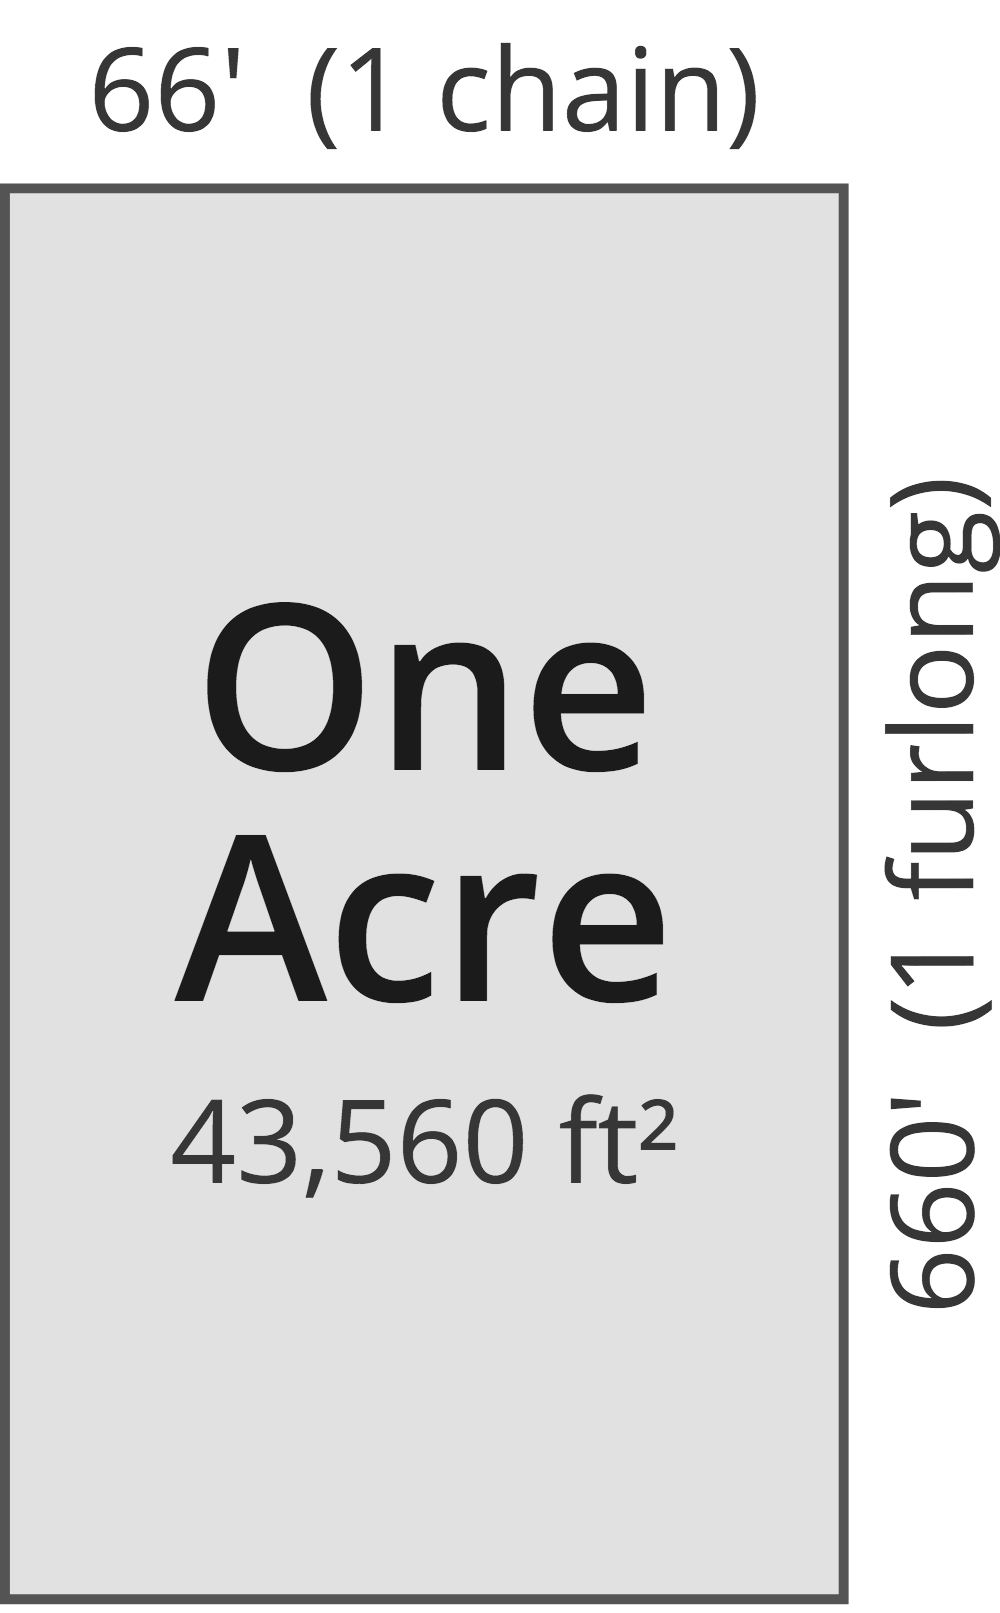 Illustration Showing The Size Of An Acre Is A Parcel Land That 66 Feet